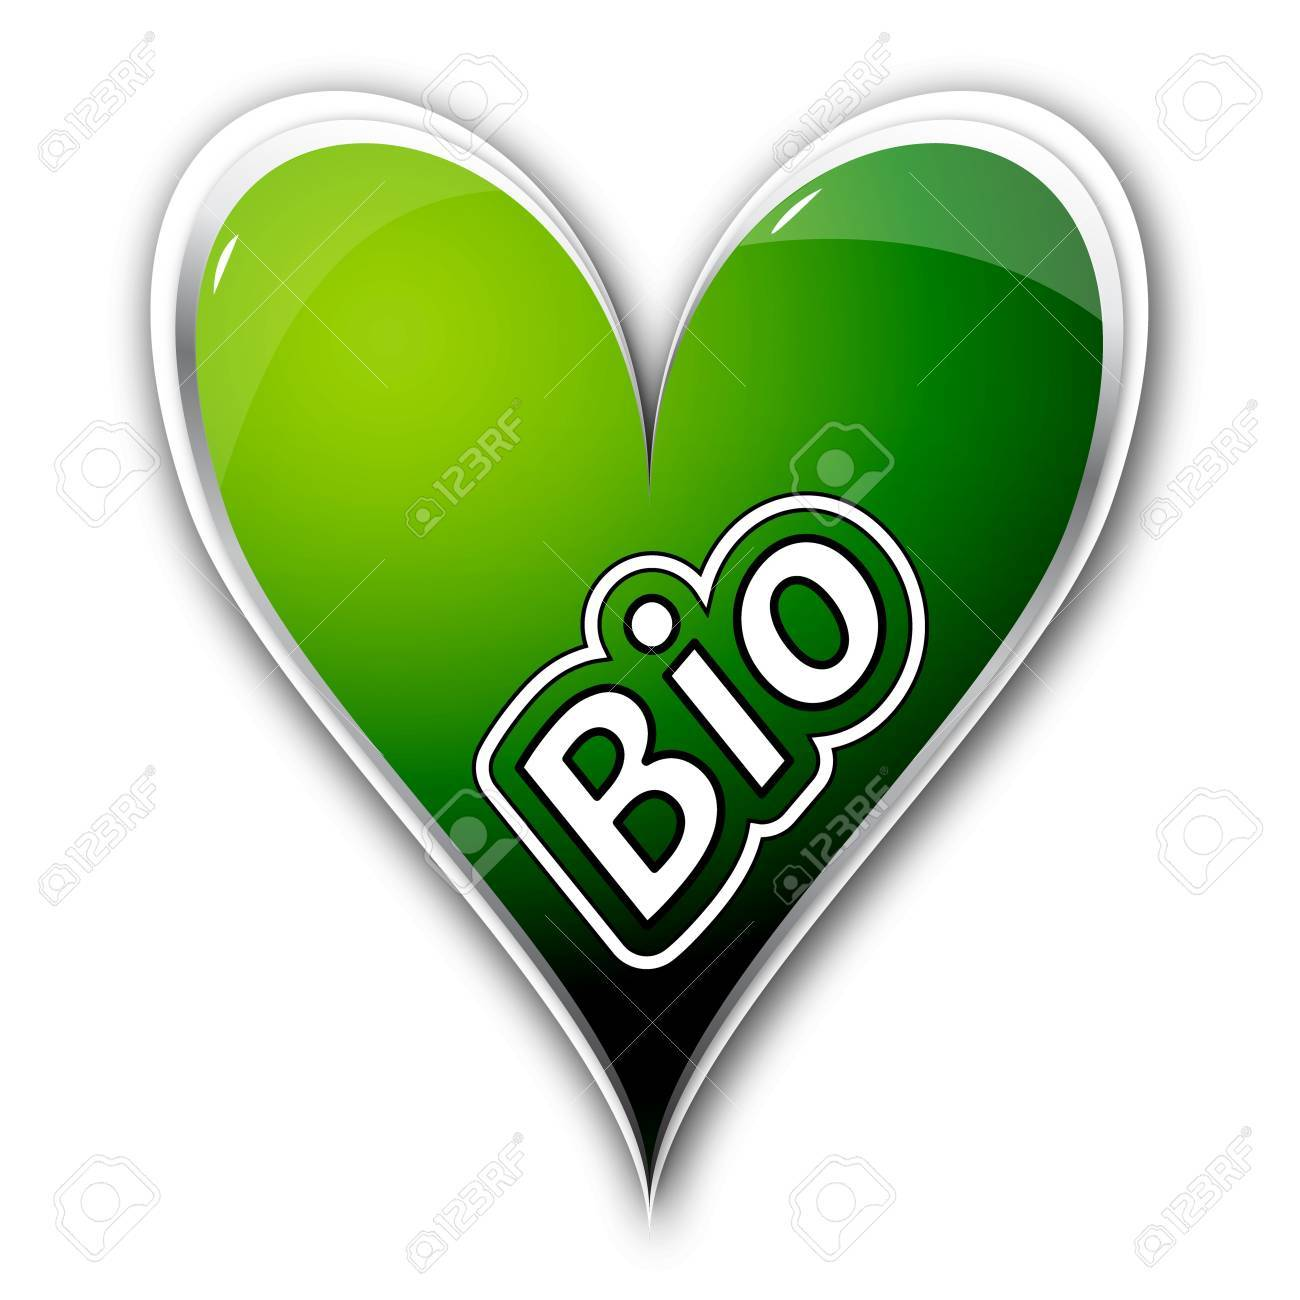 icon heart with text bio Stock Photo - 14686444